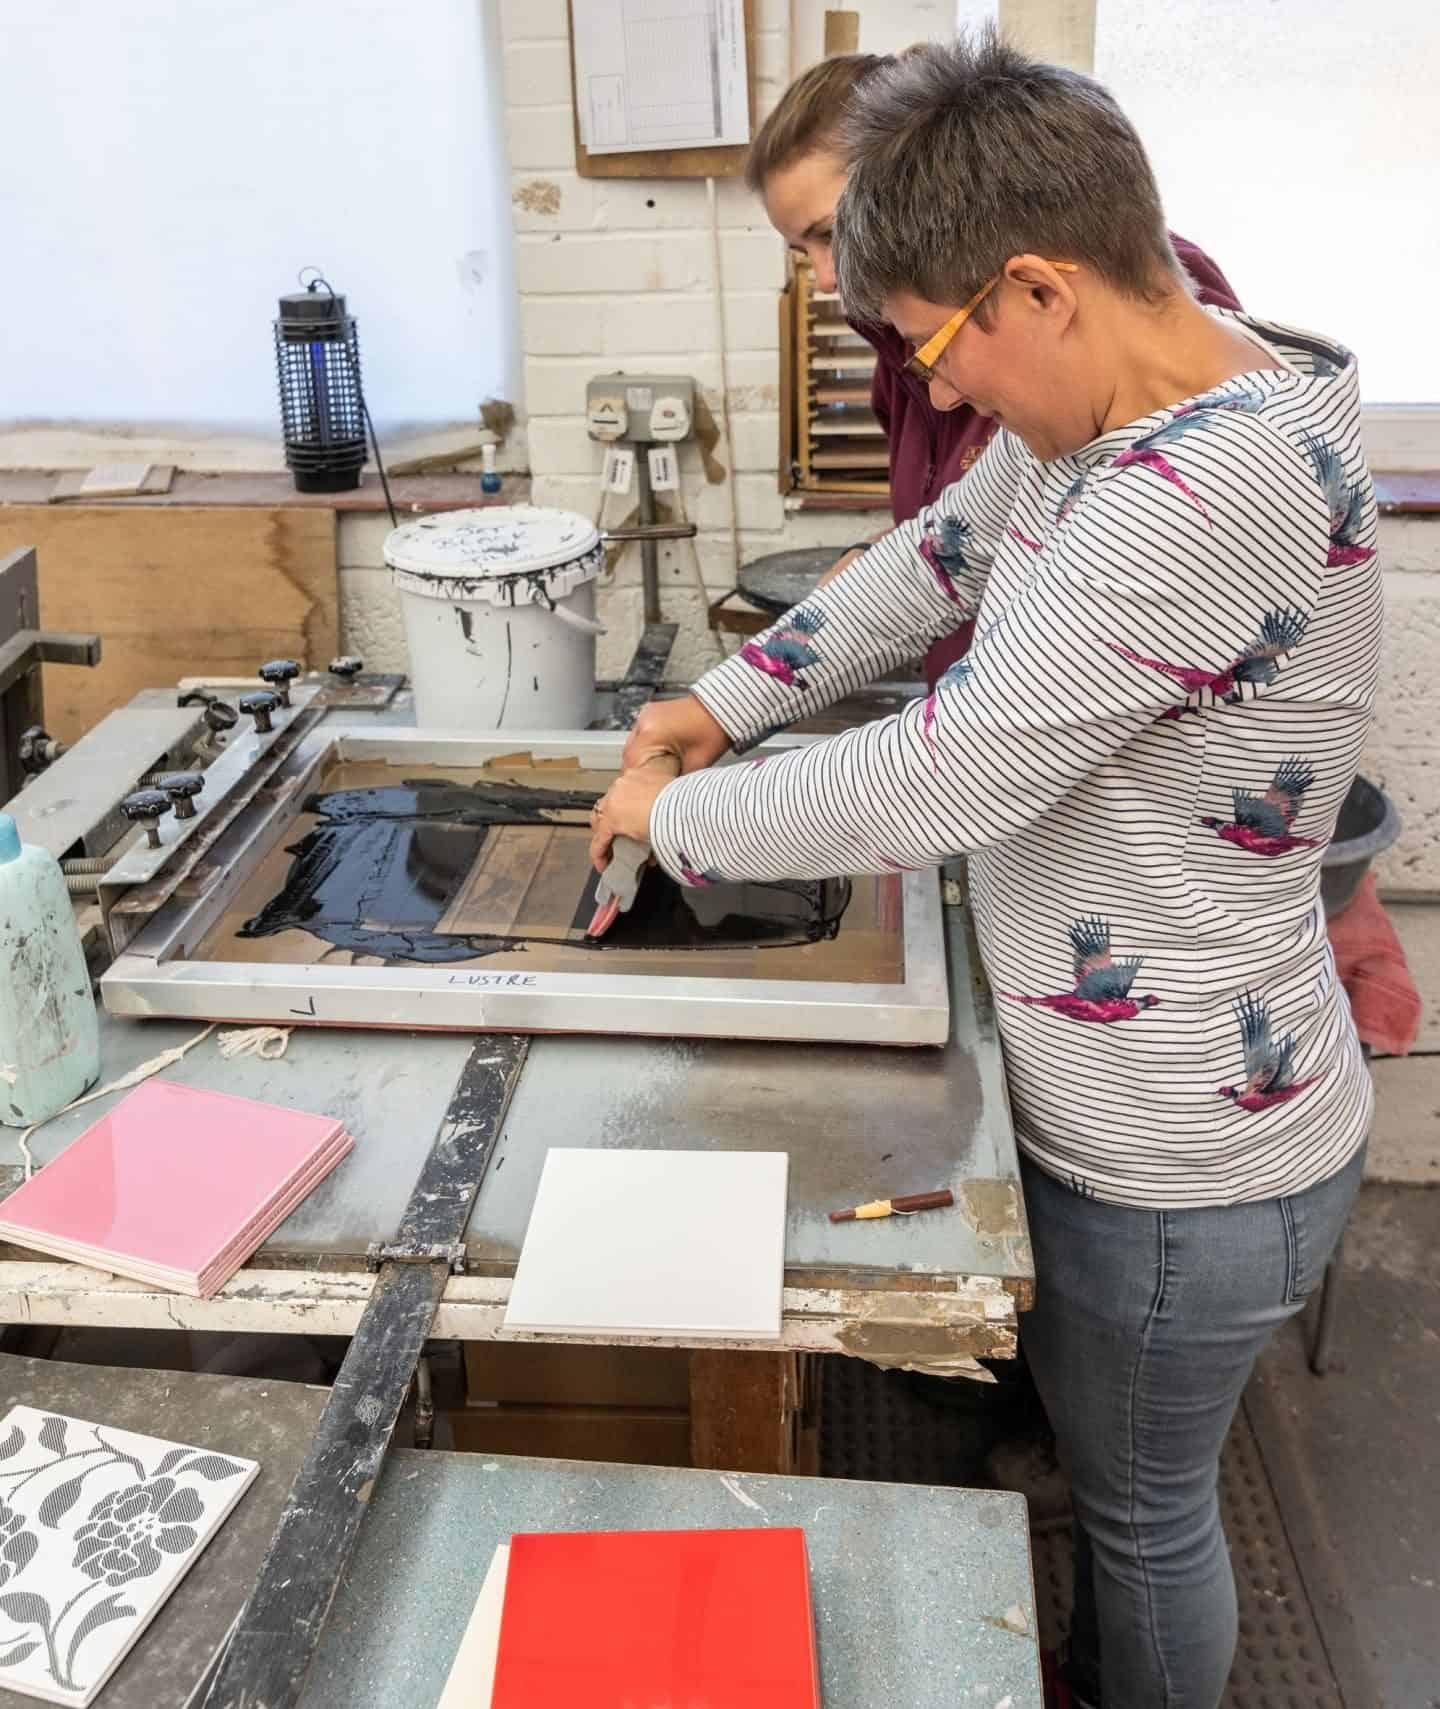 Screen Printing Tiles at Original Style Tile Factory Tour